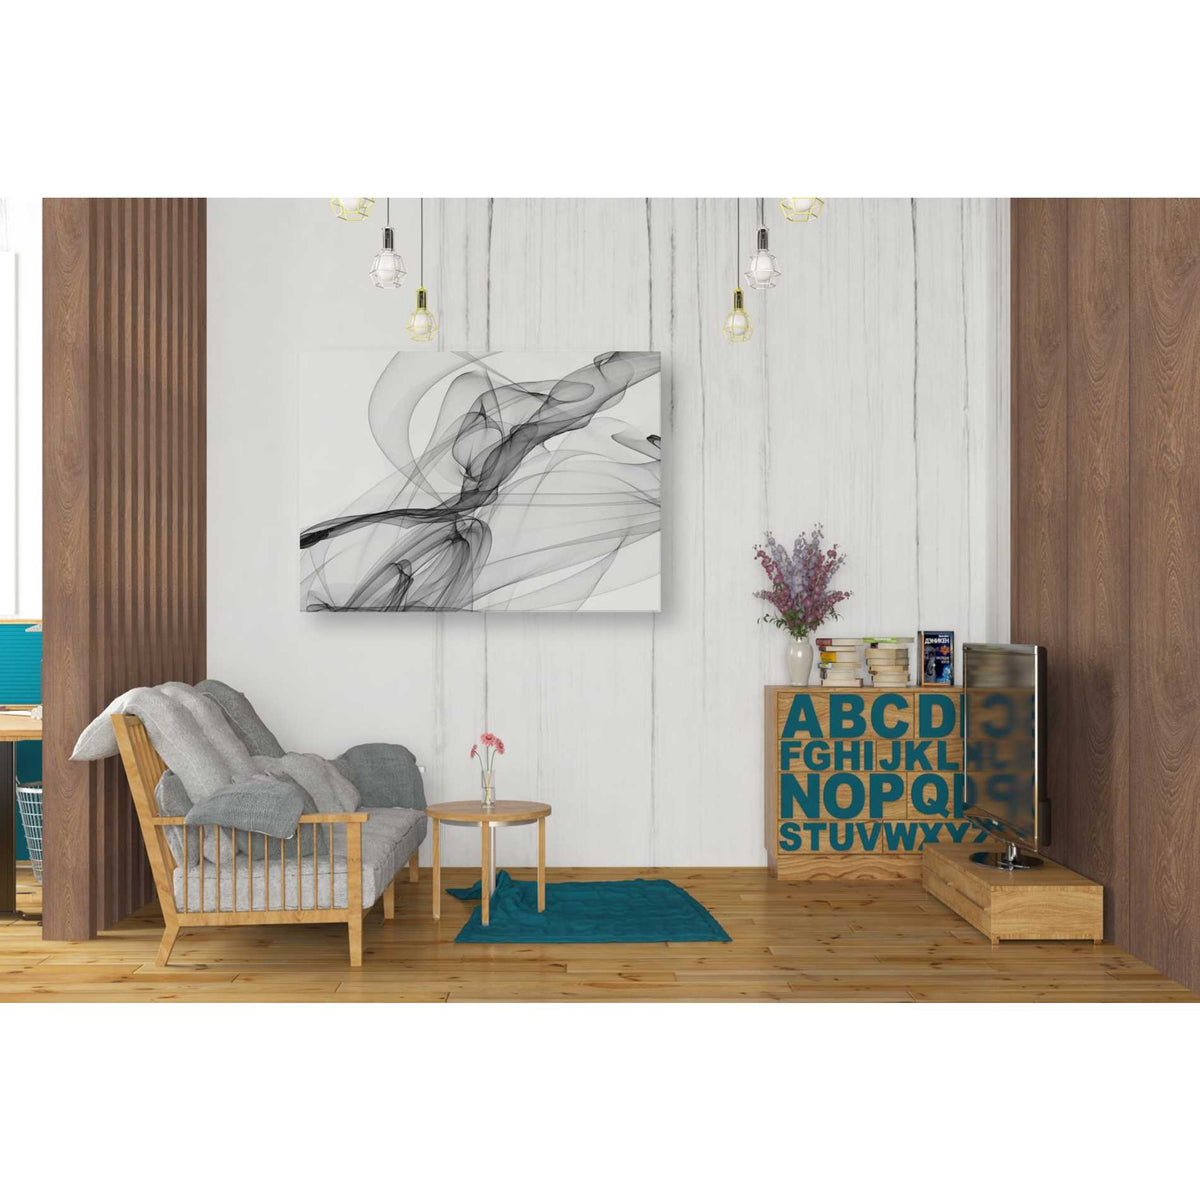 Epic Graffiti 'Abstract Black and White 18-21' by Irena Orlov, Giclee Canvas Wall Art